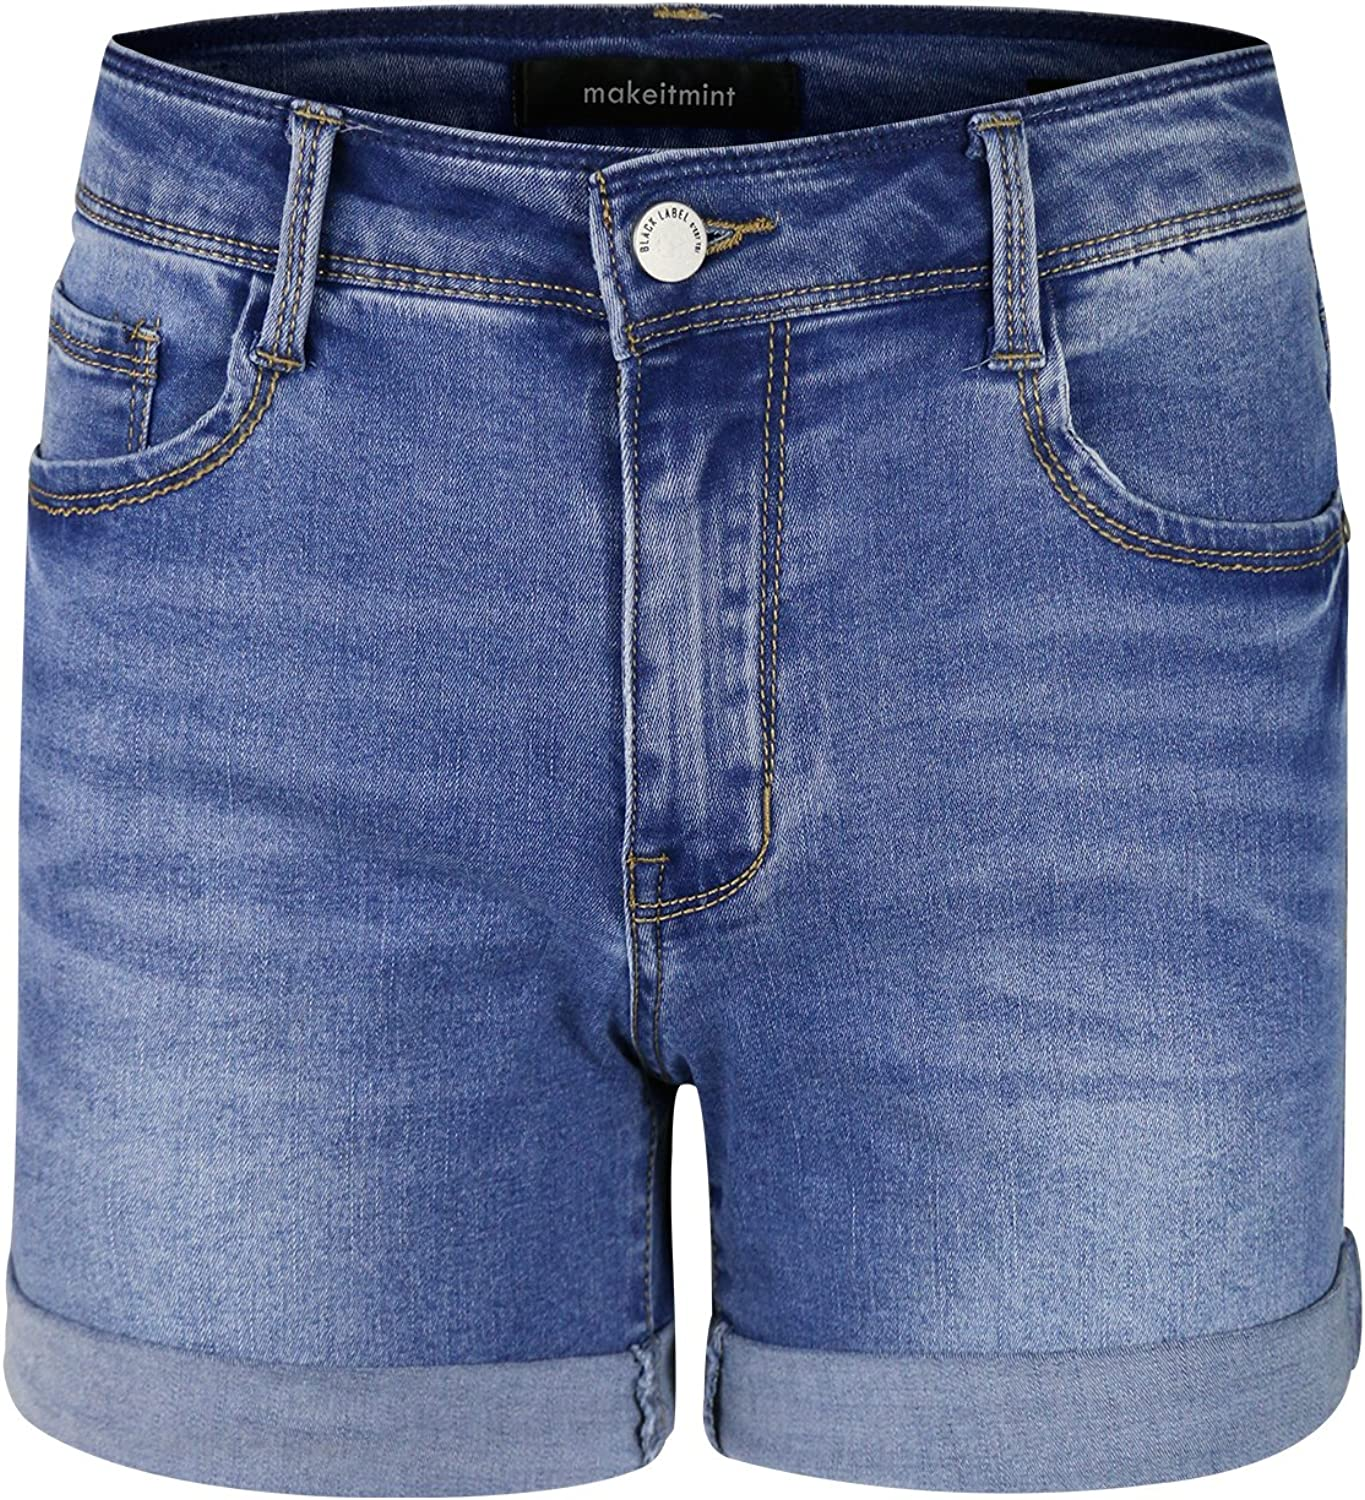 Makeitmint Women's MidRise Washed Double Fold Denim Jean Pant Shorts w Pockets